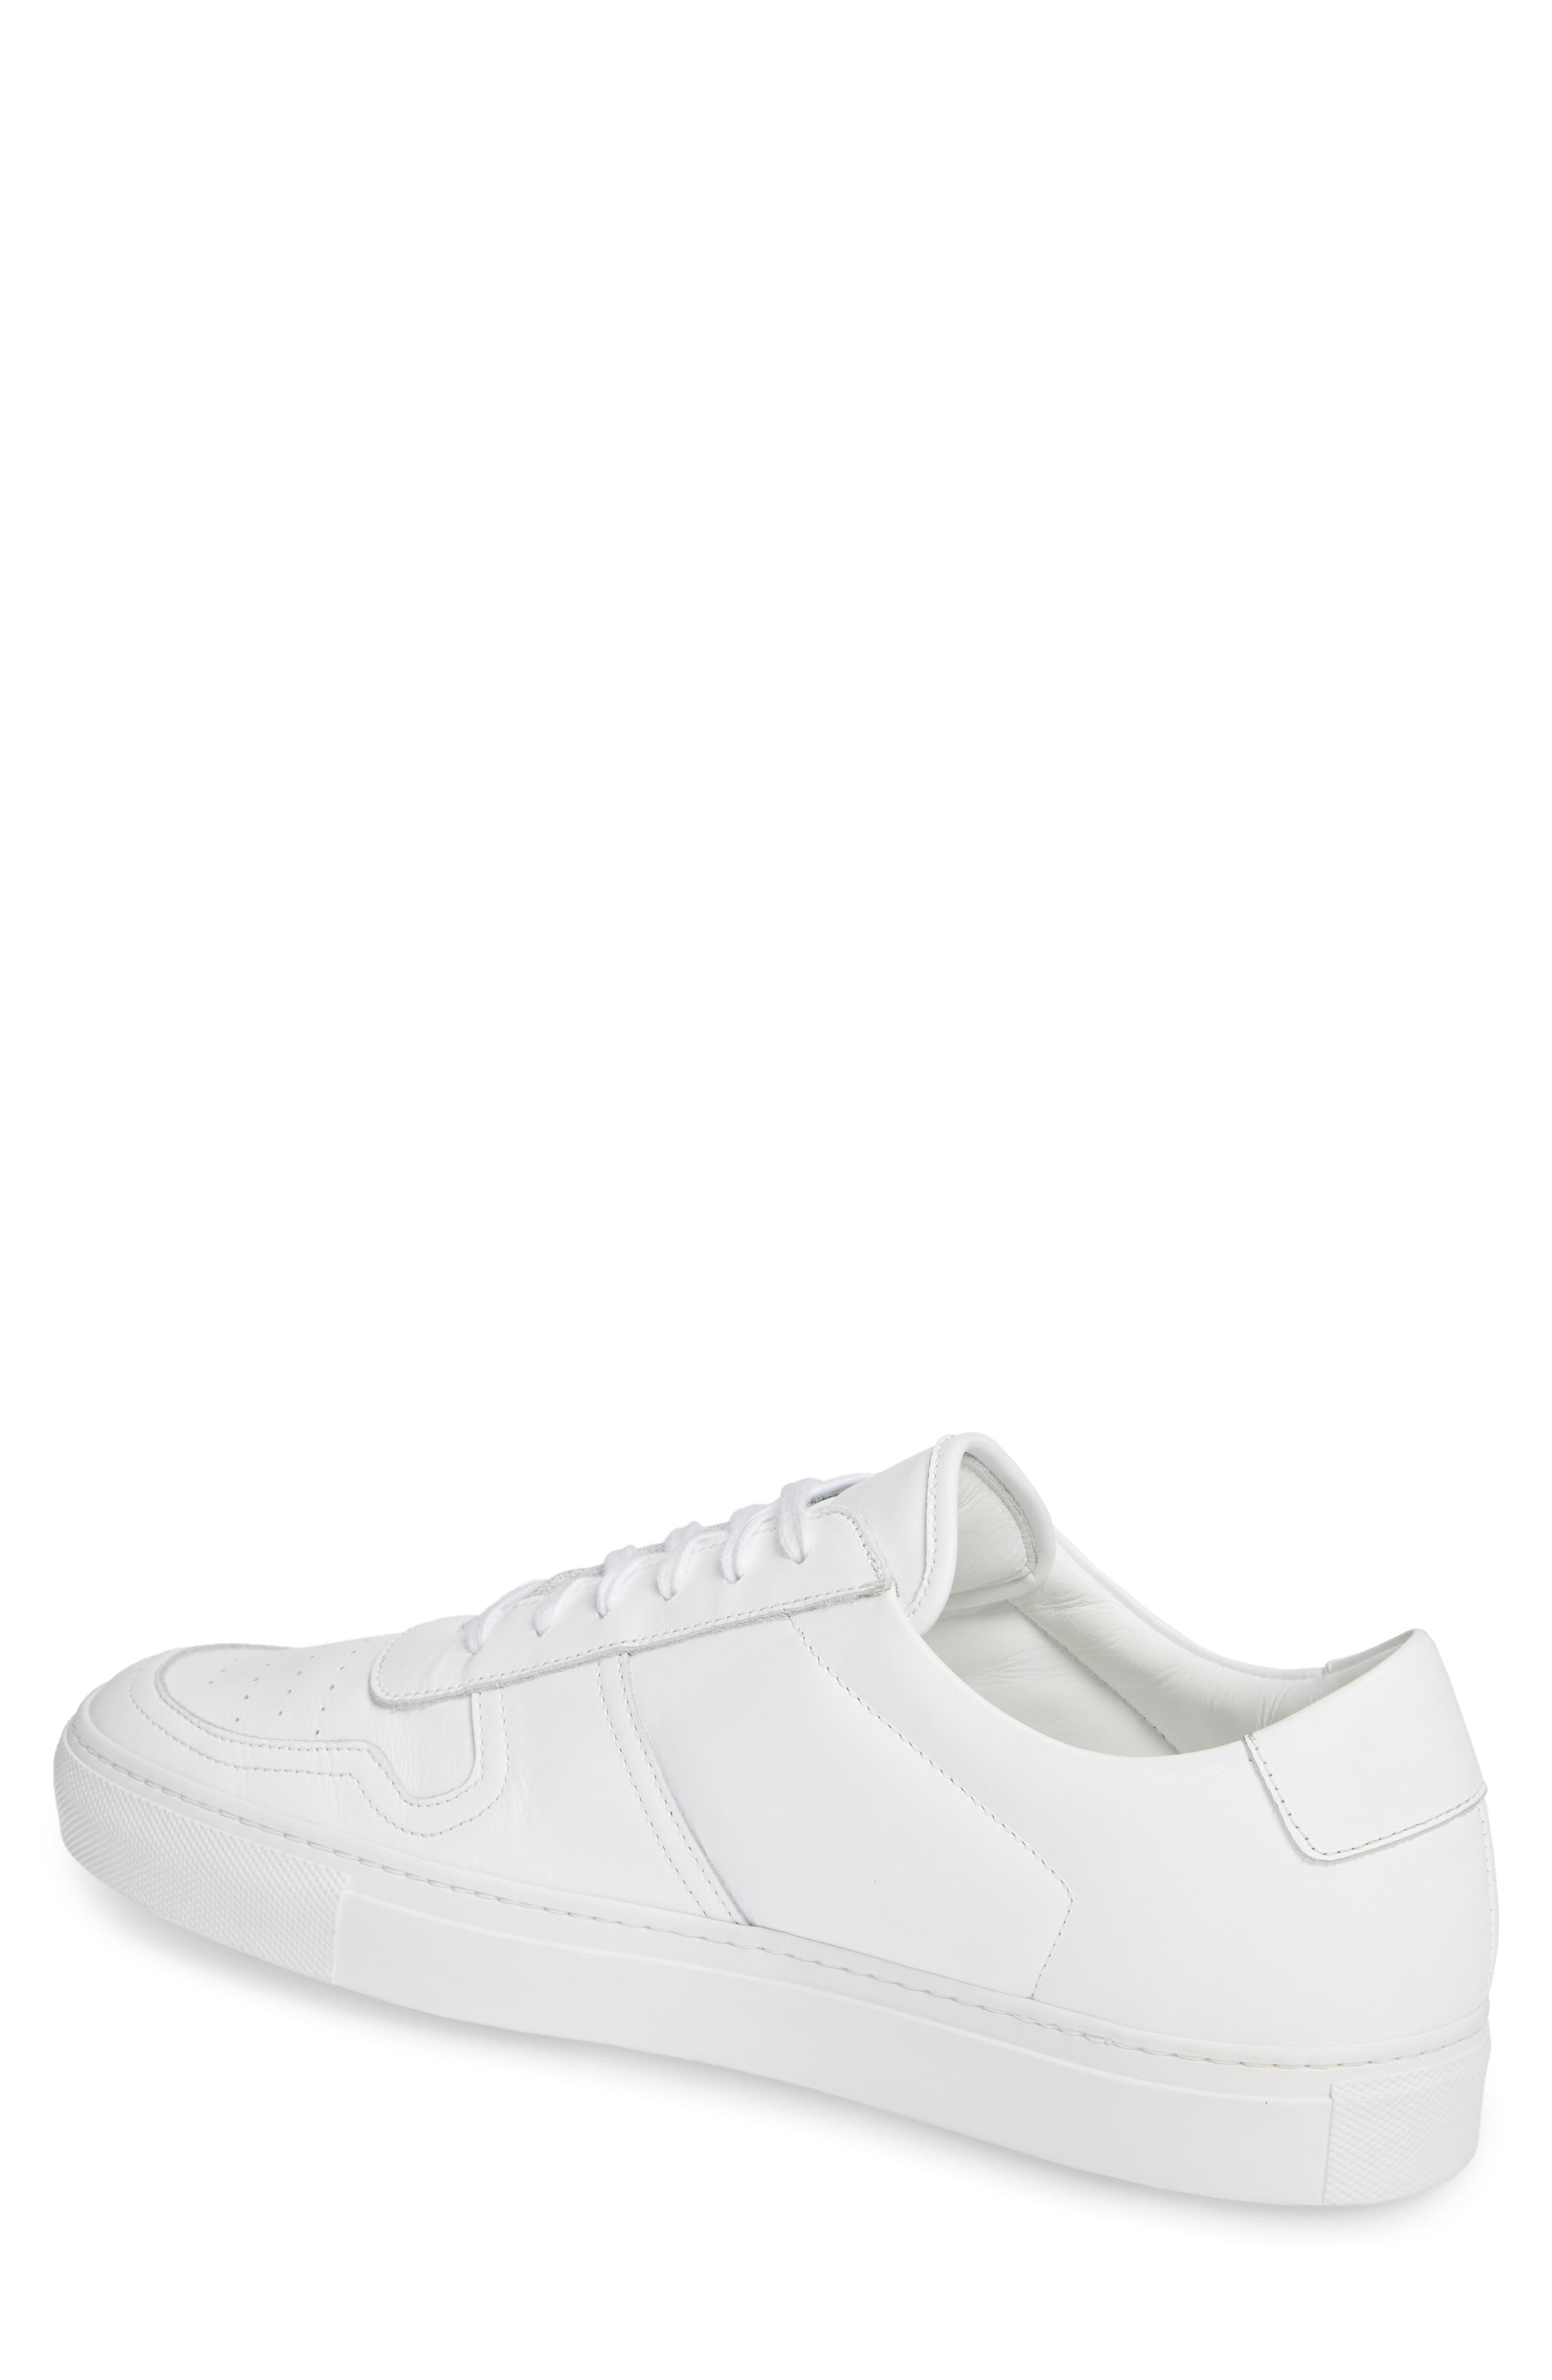 COMMON PROJECTS,                             Bball Low Top Sneaker,                             Alternate thumbnail 2, color,                             WHITE